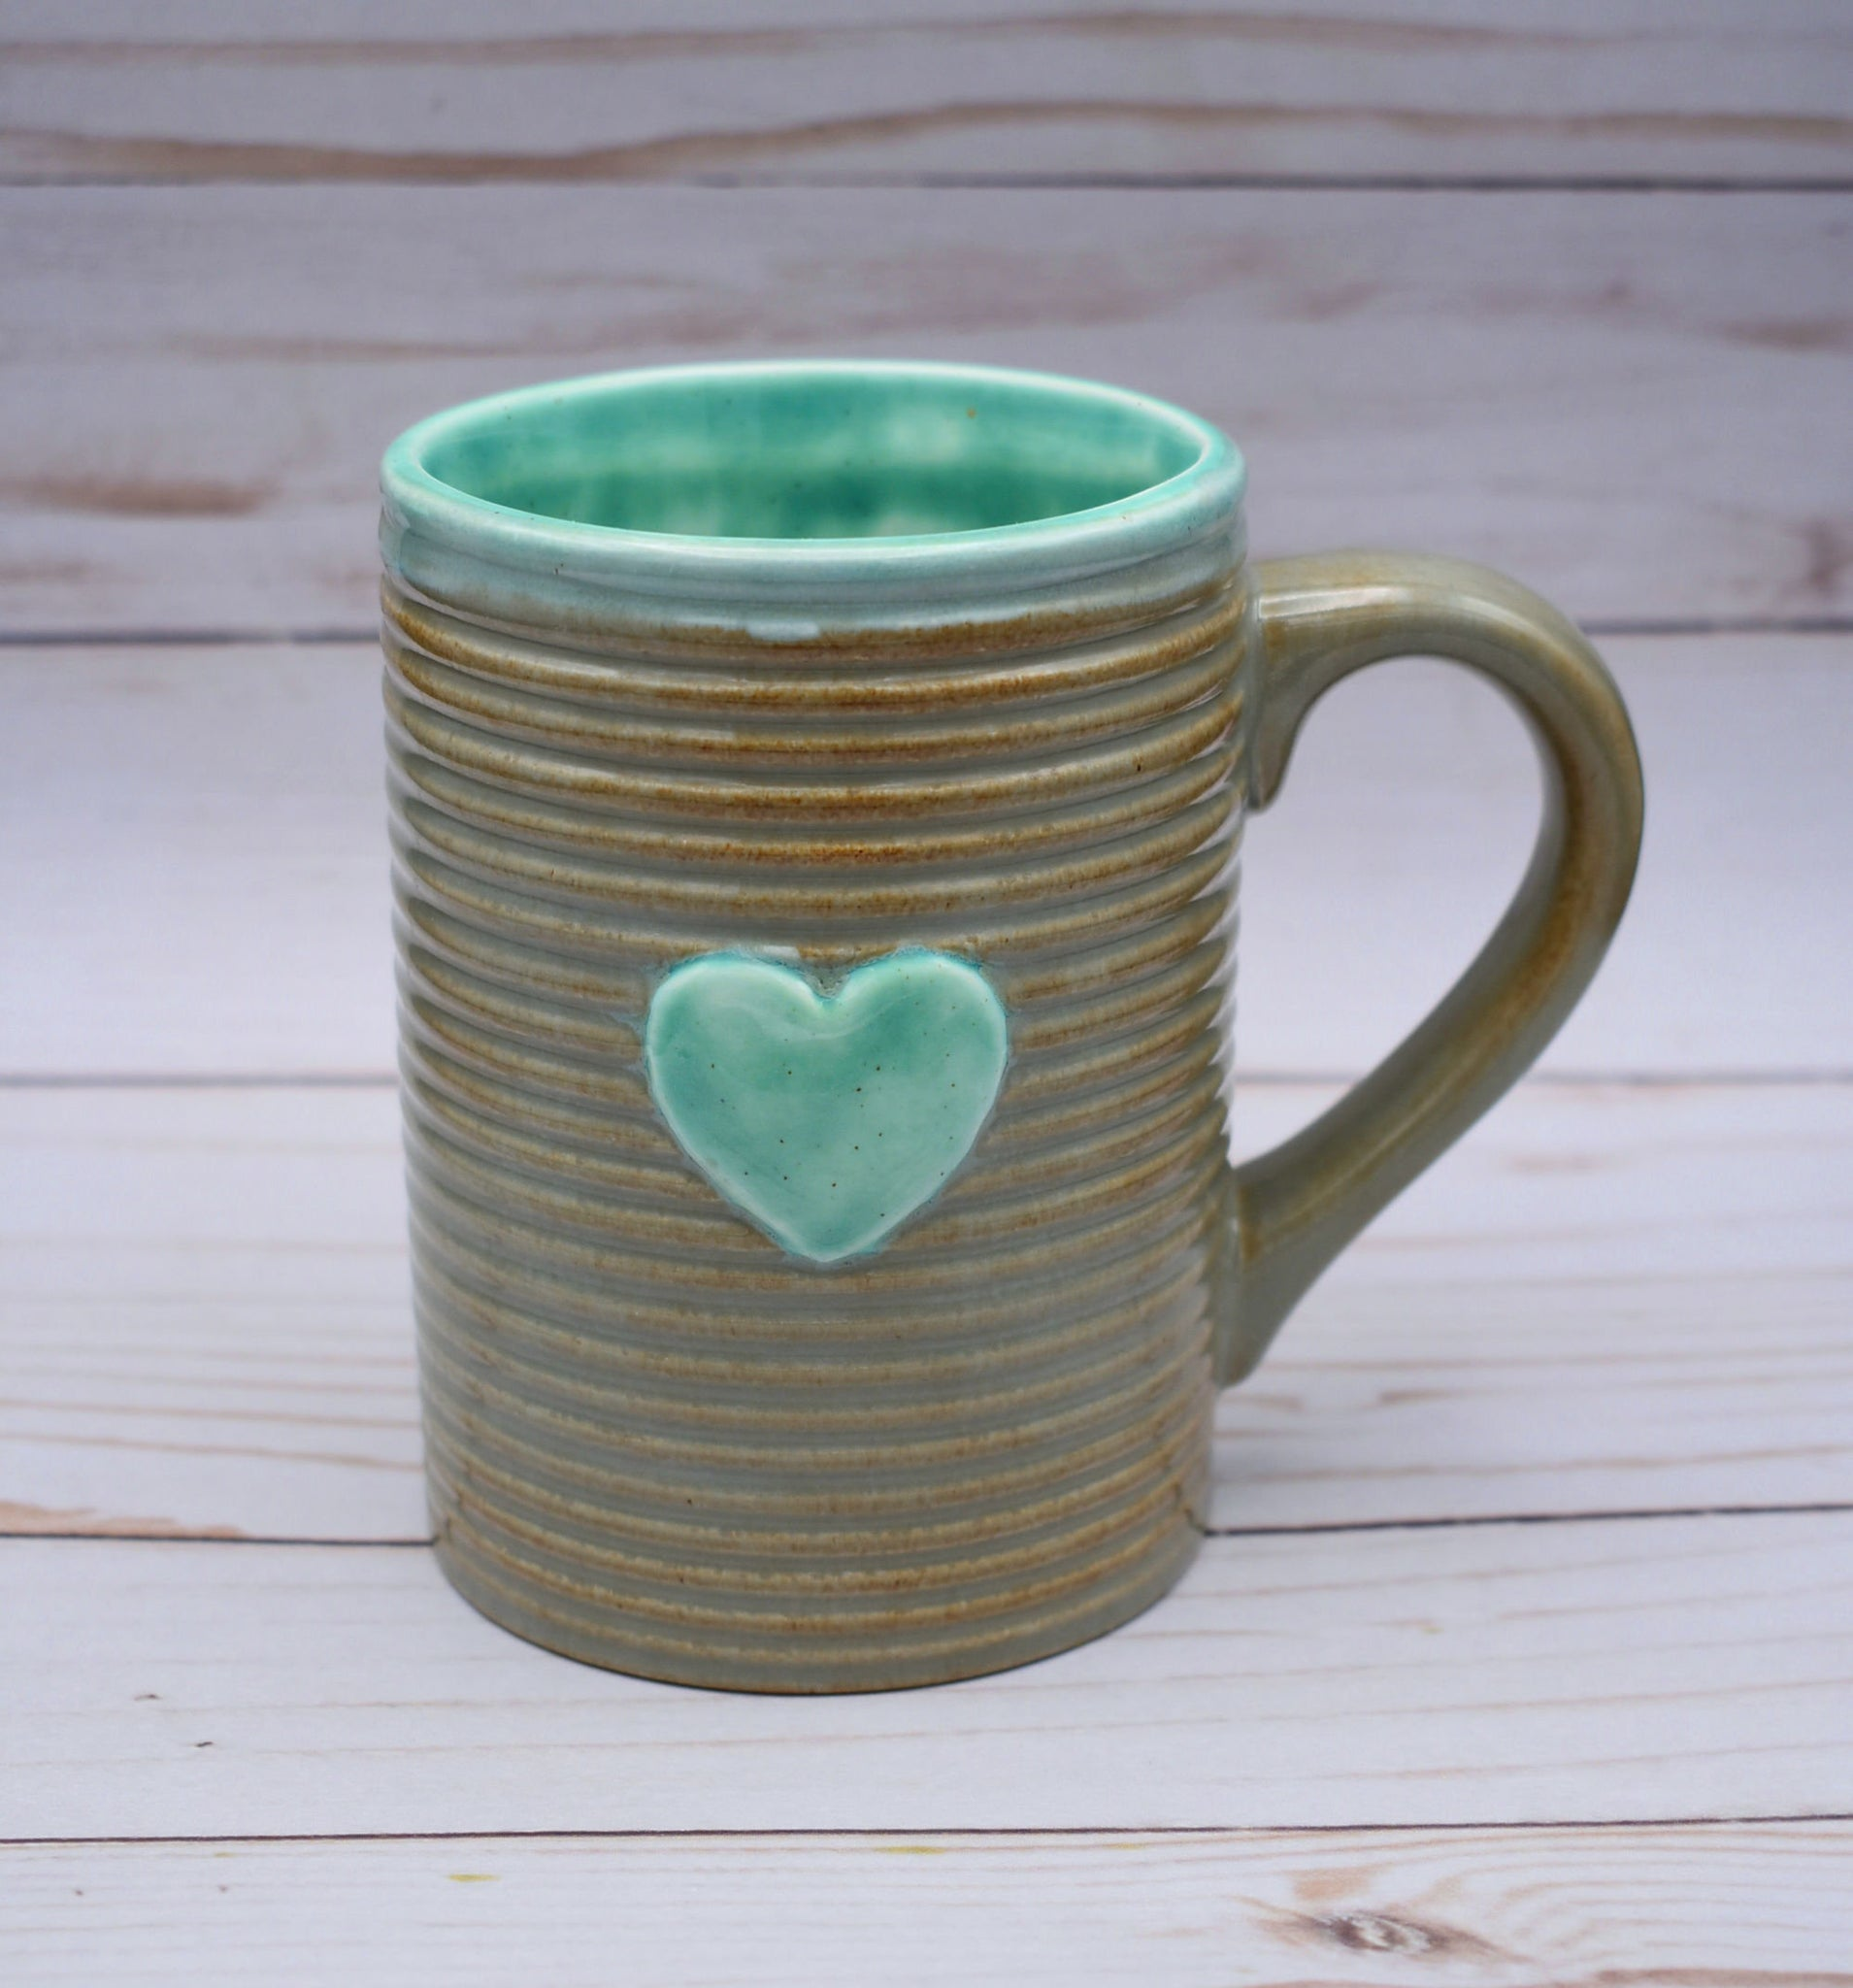 Lovers Mug, Teal and Grey Heart Mug, Coffee Lover's Mug, Turquoise and Grey Coffee Cup